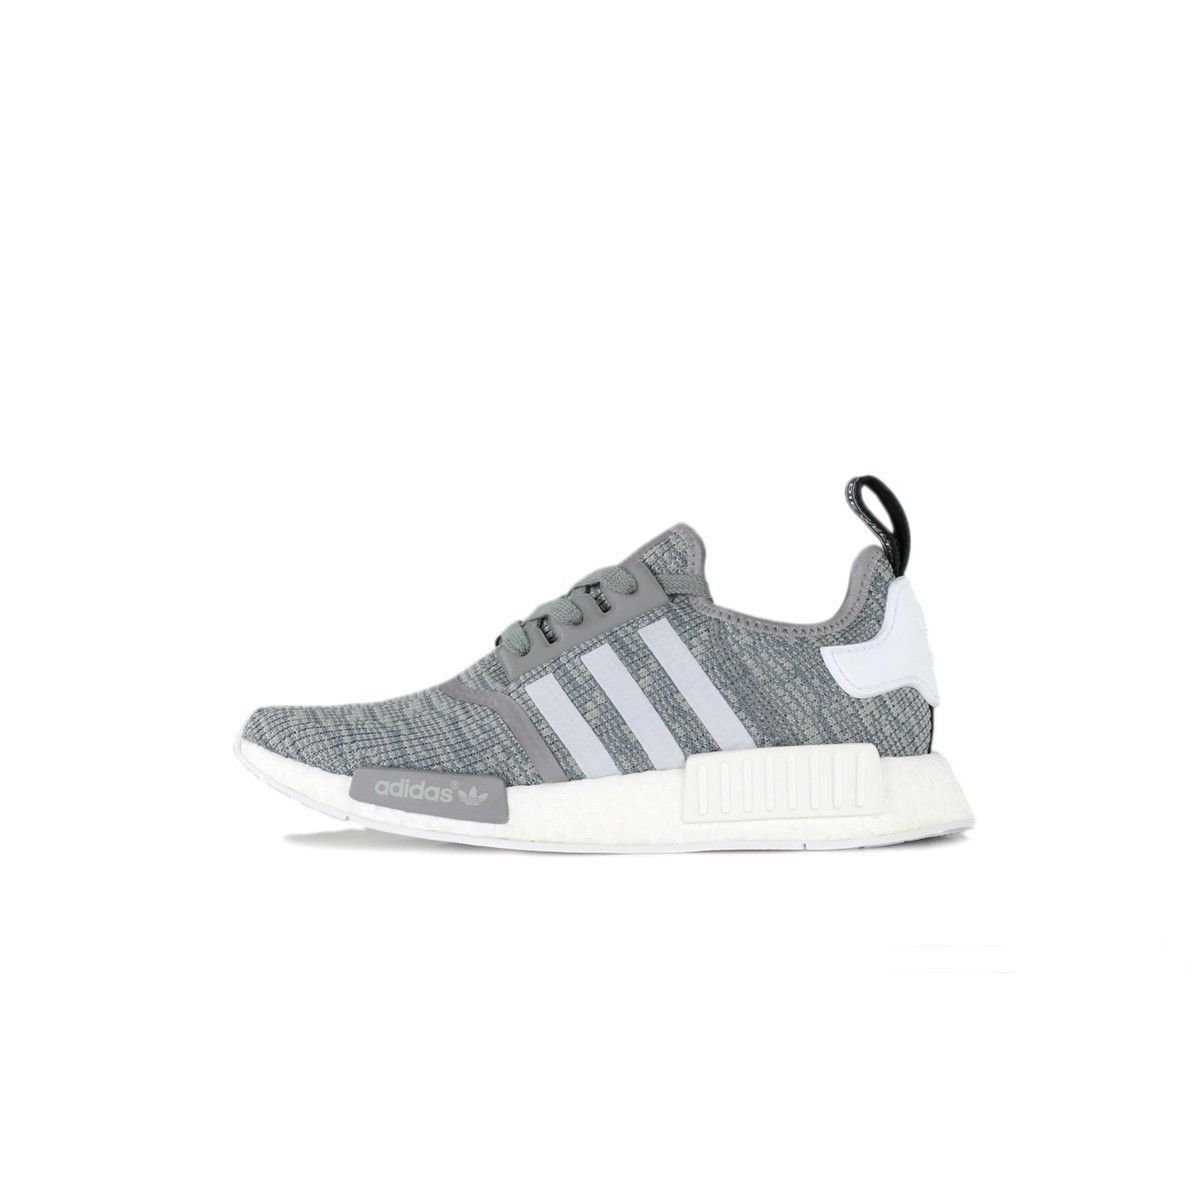 chaussures adidas homme 46